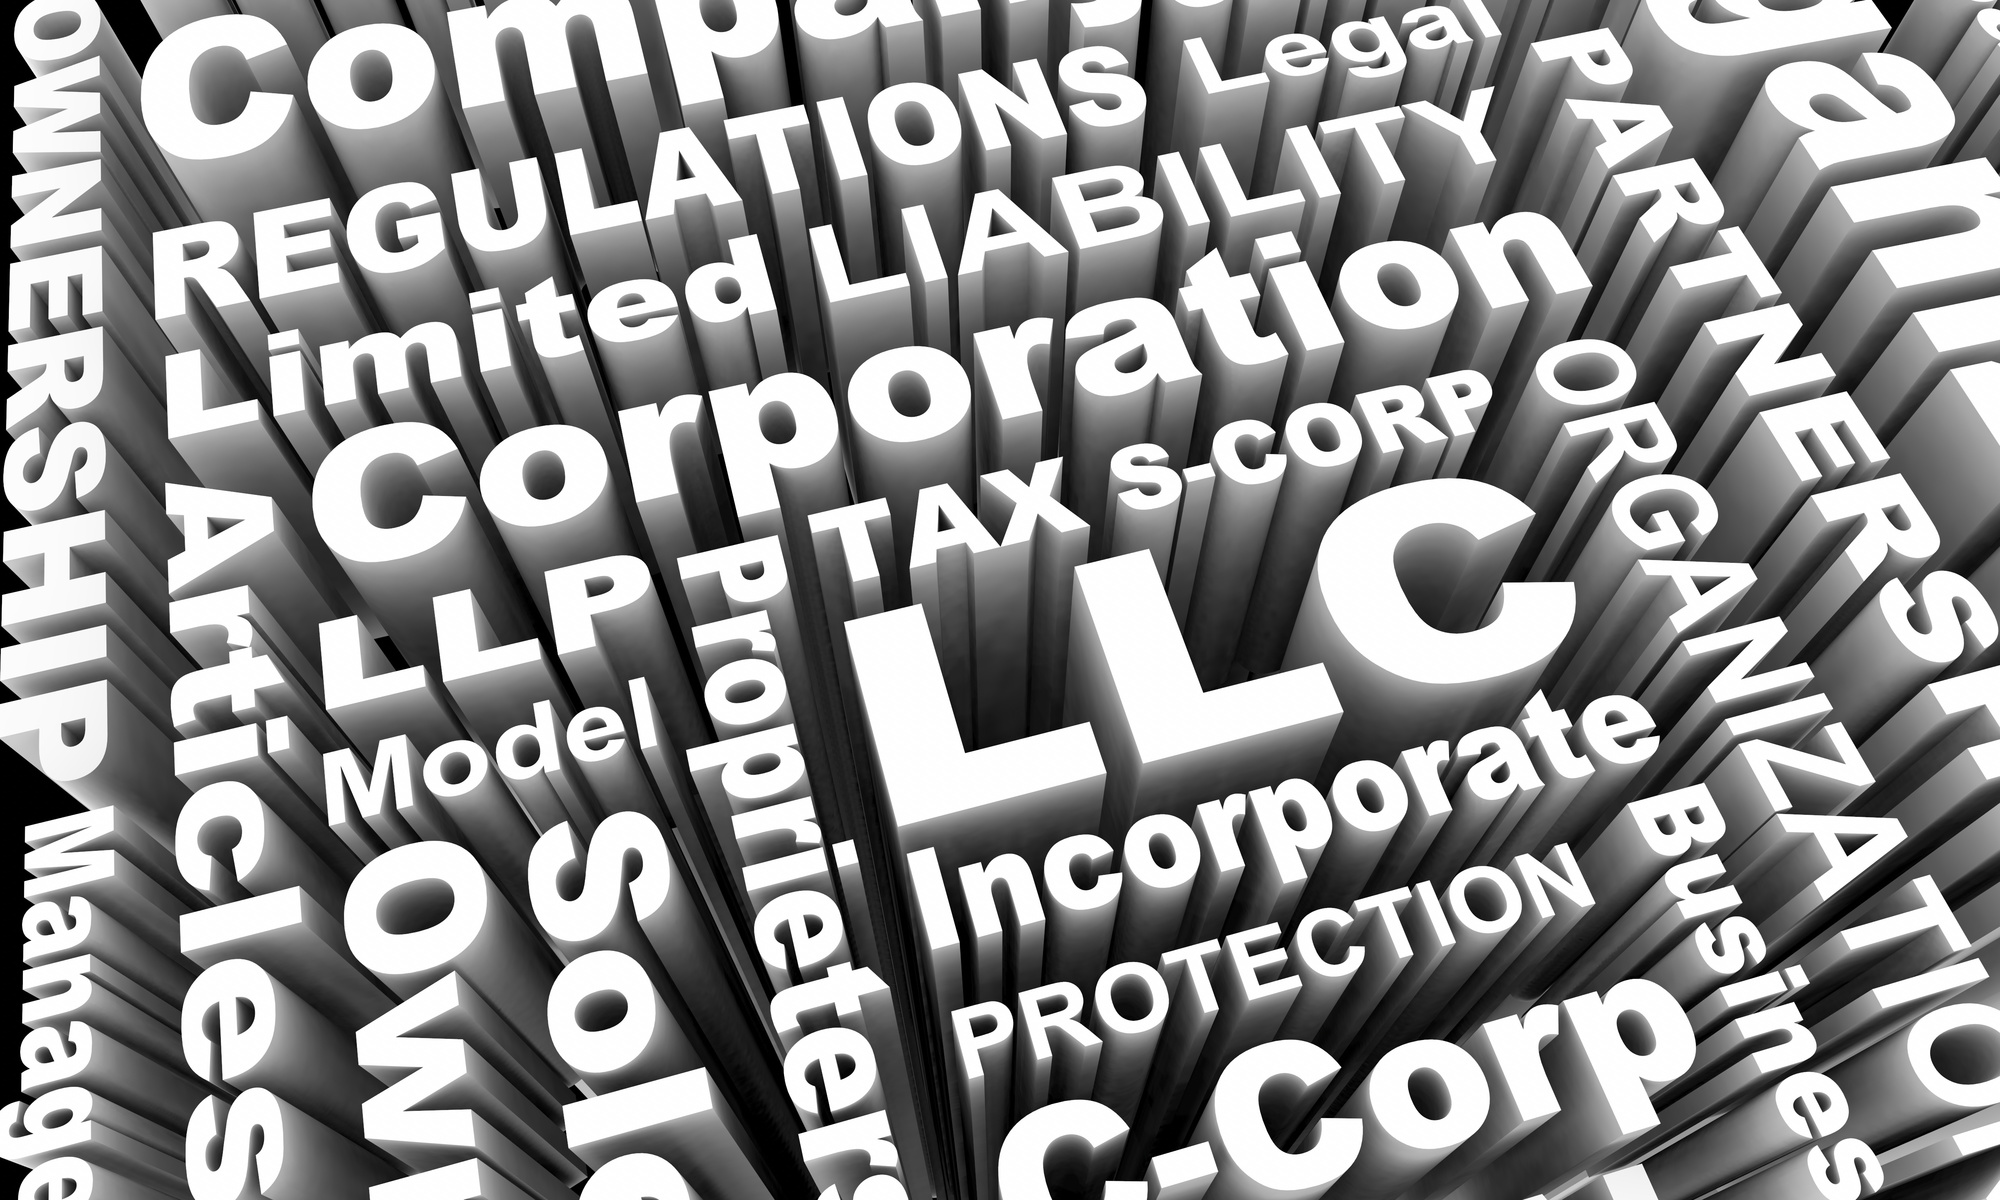 image of llc and corporation words